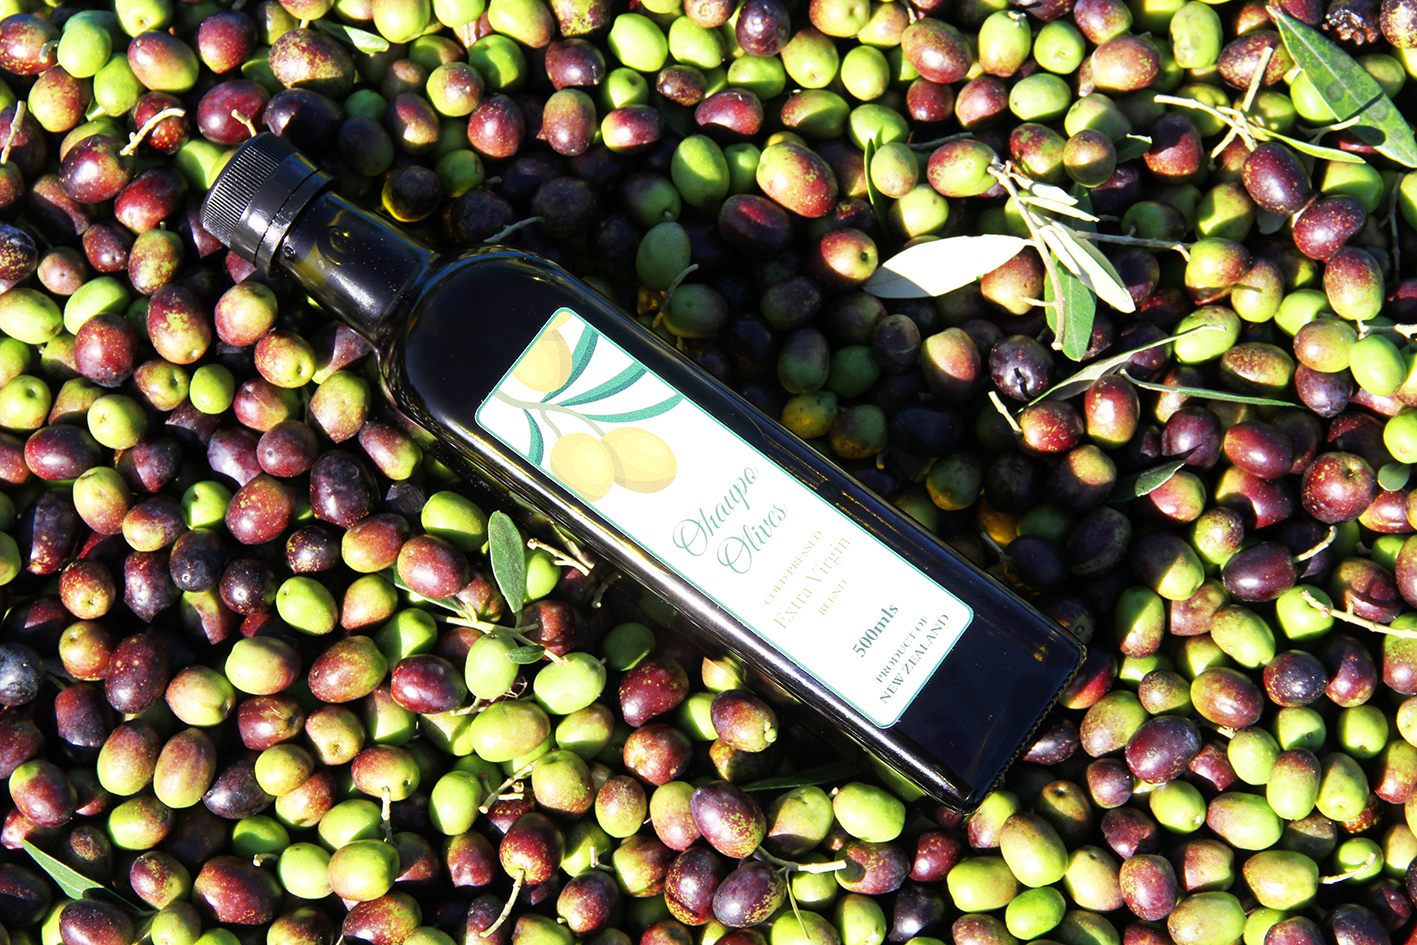 sample the extra virgin olive oil